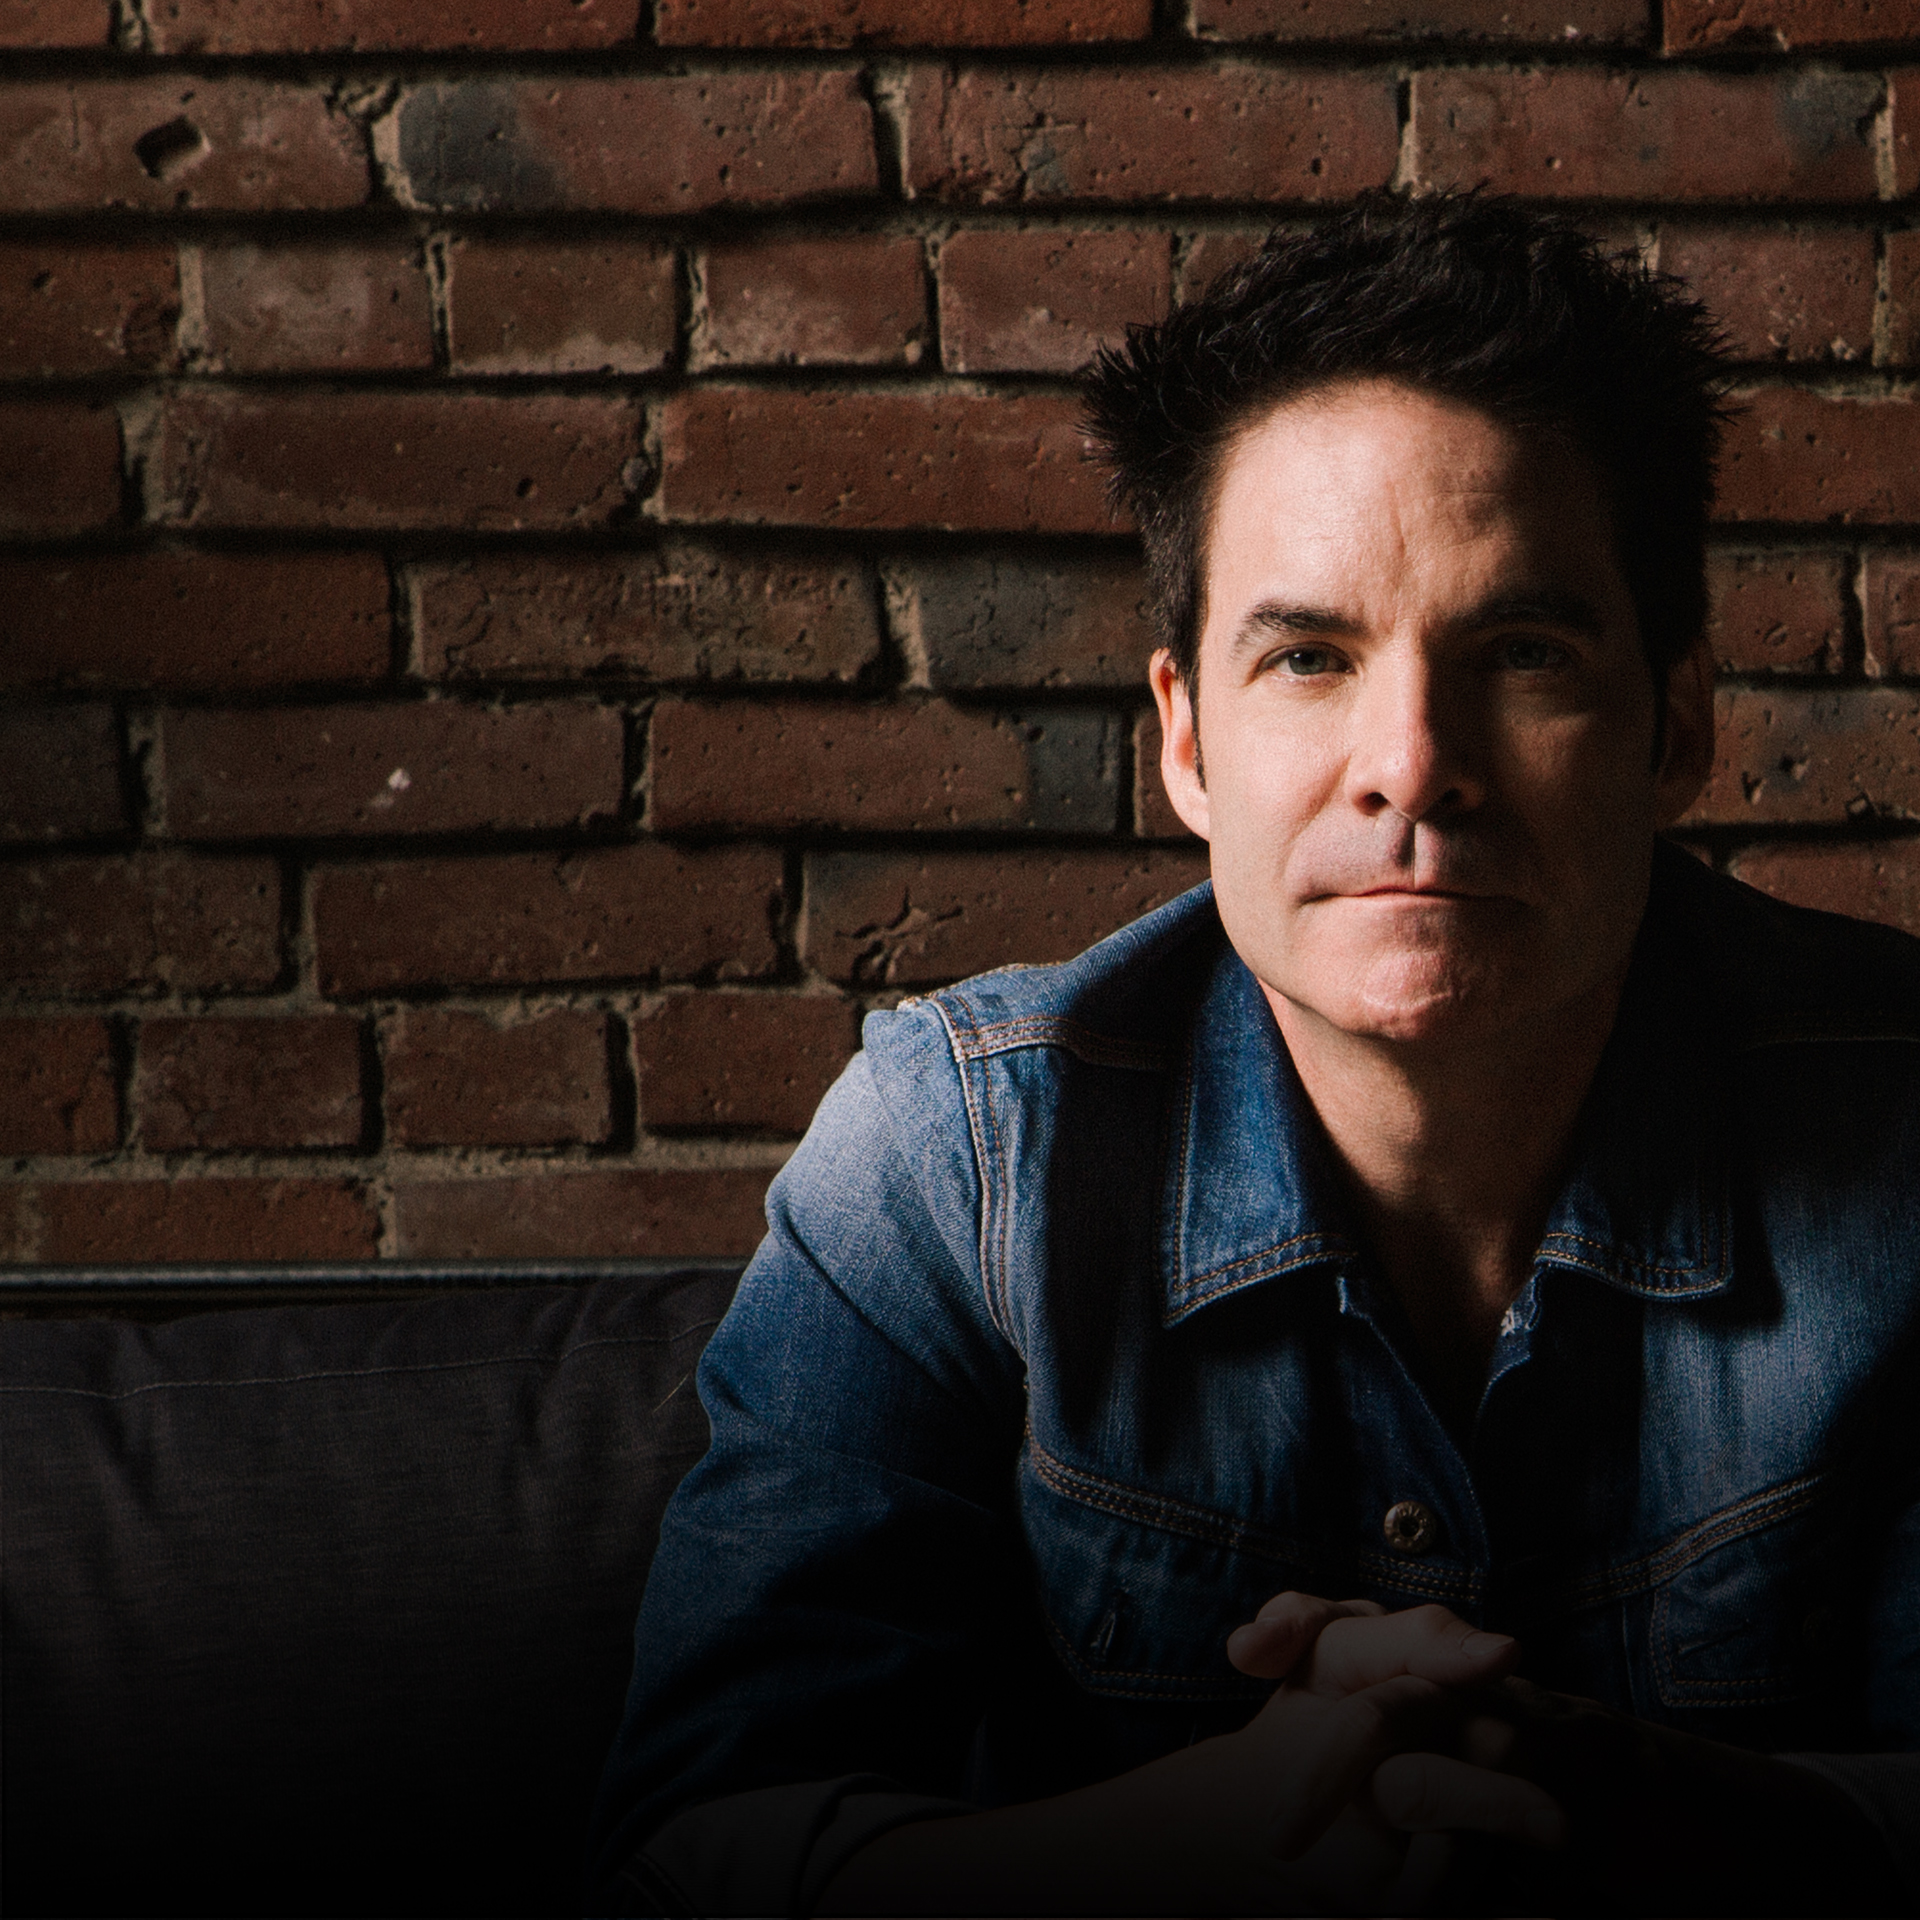 Train Tracks hosted by Pat Monahan